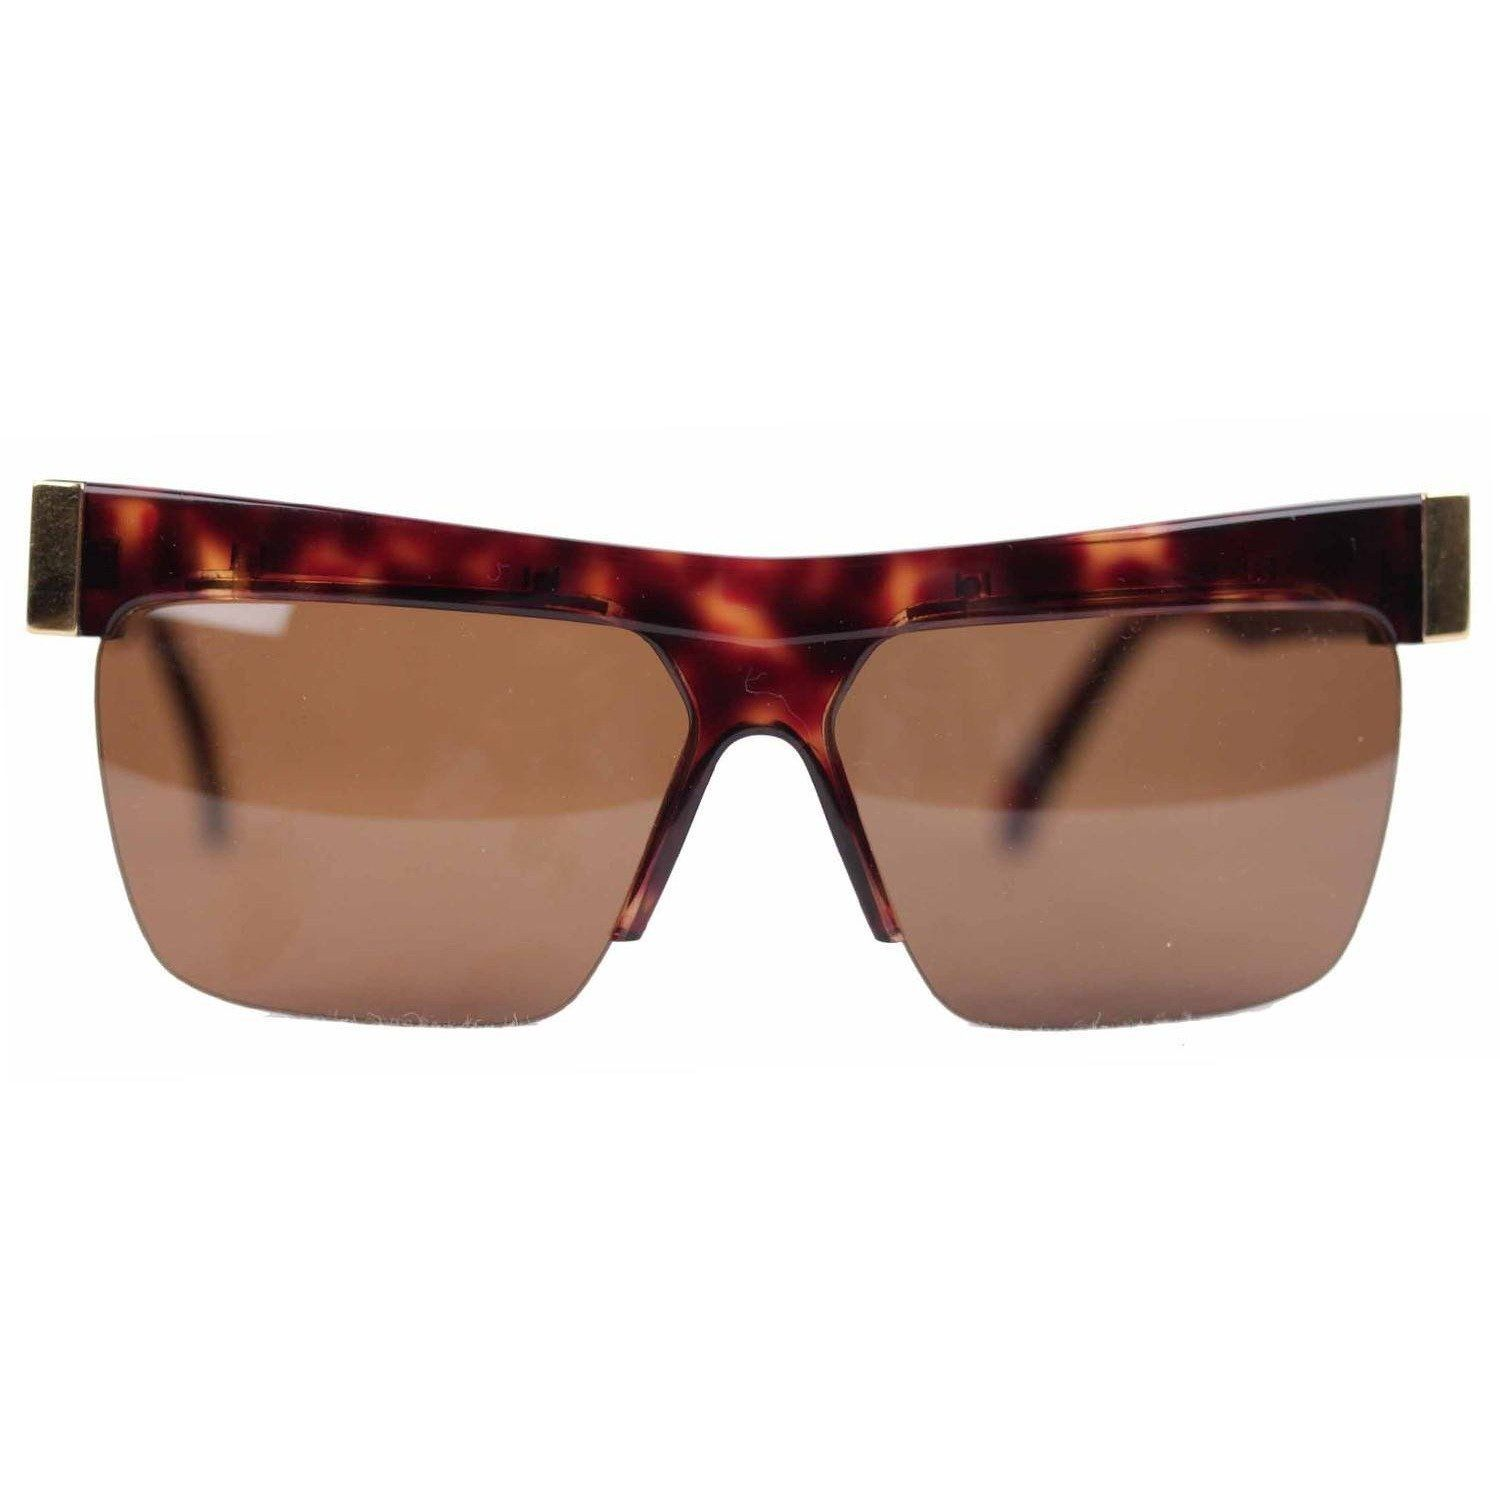 Gianni Versace Safety Pin Sunglasses Mod 427 Col 279 At: Gianni Versace Vintage Gold Brown Unisex Sunglasses Mod